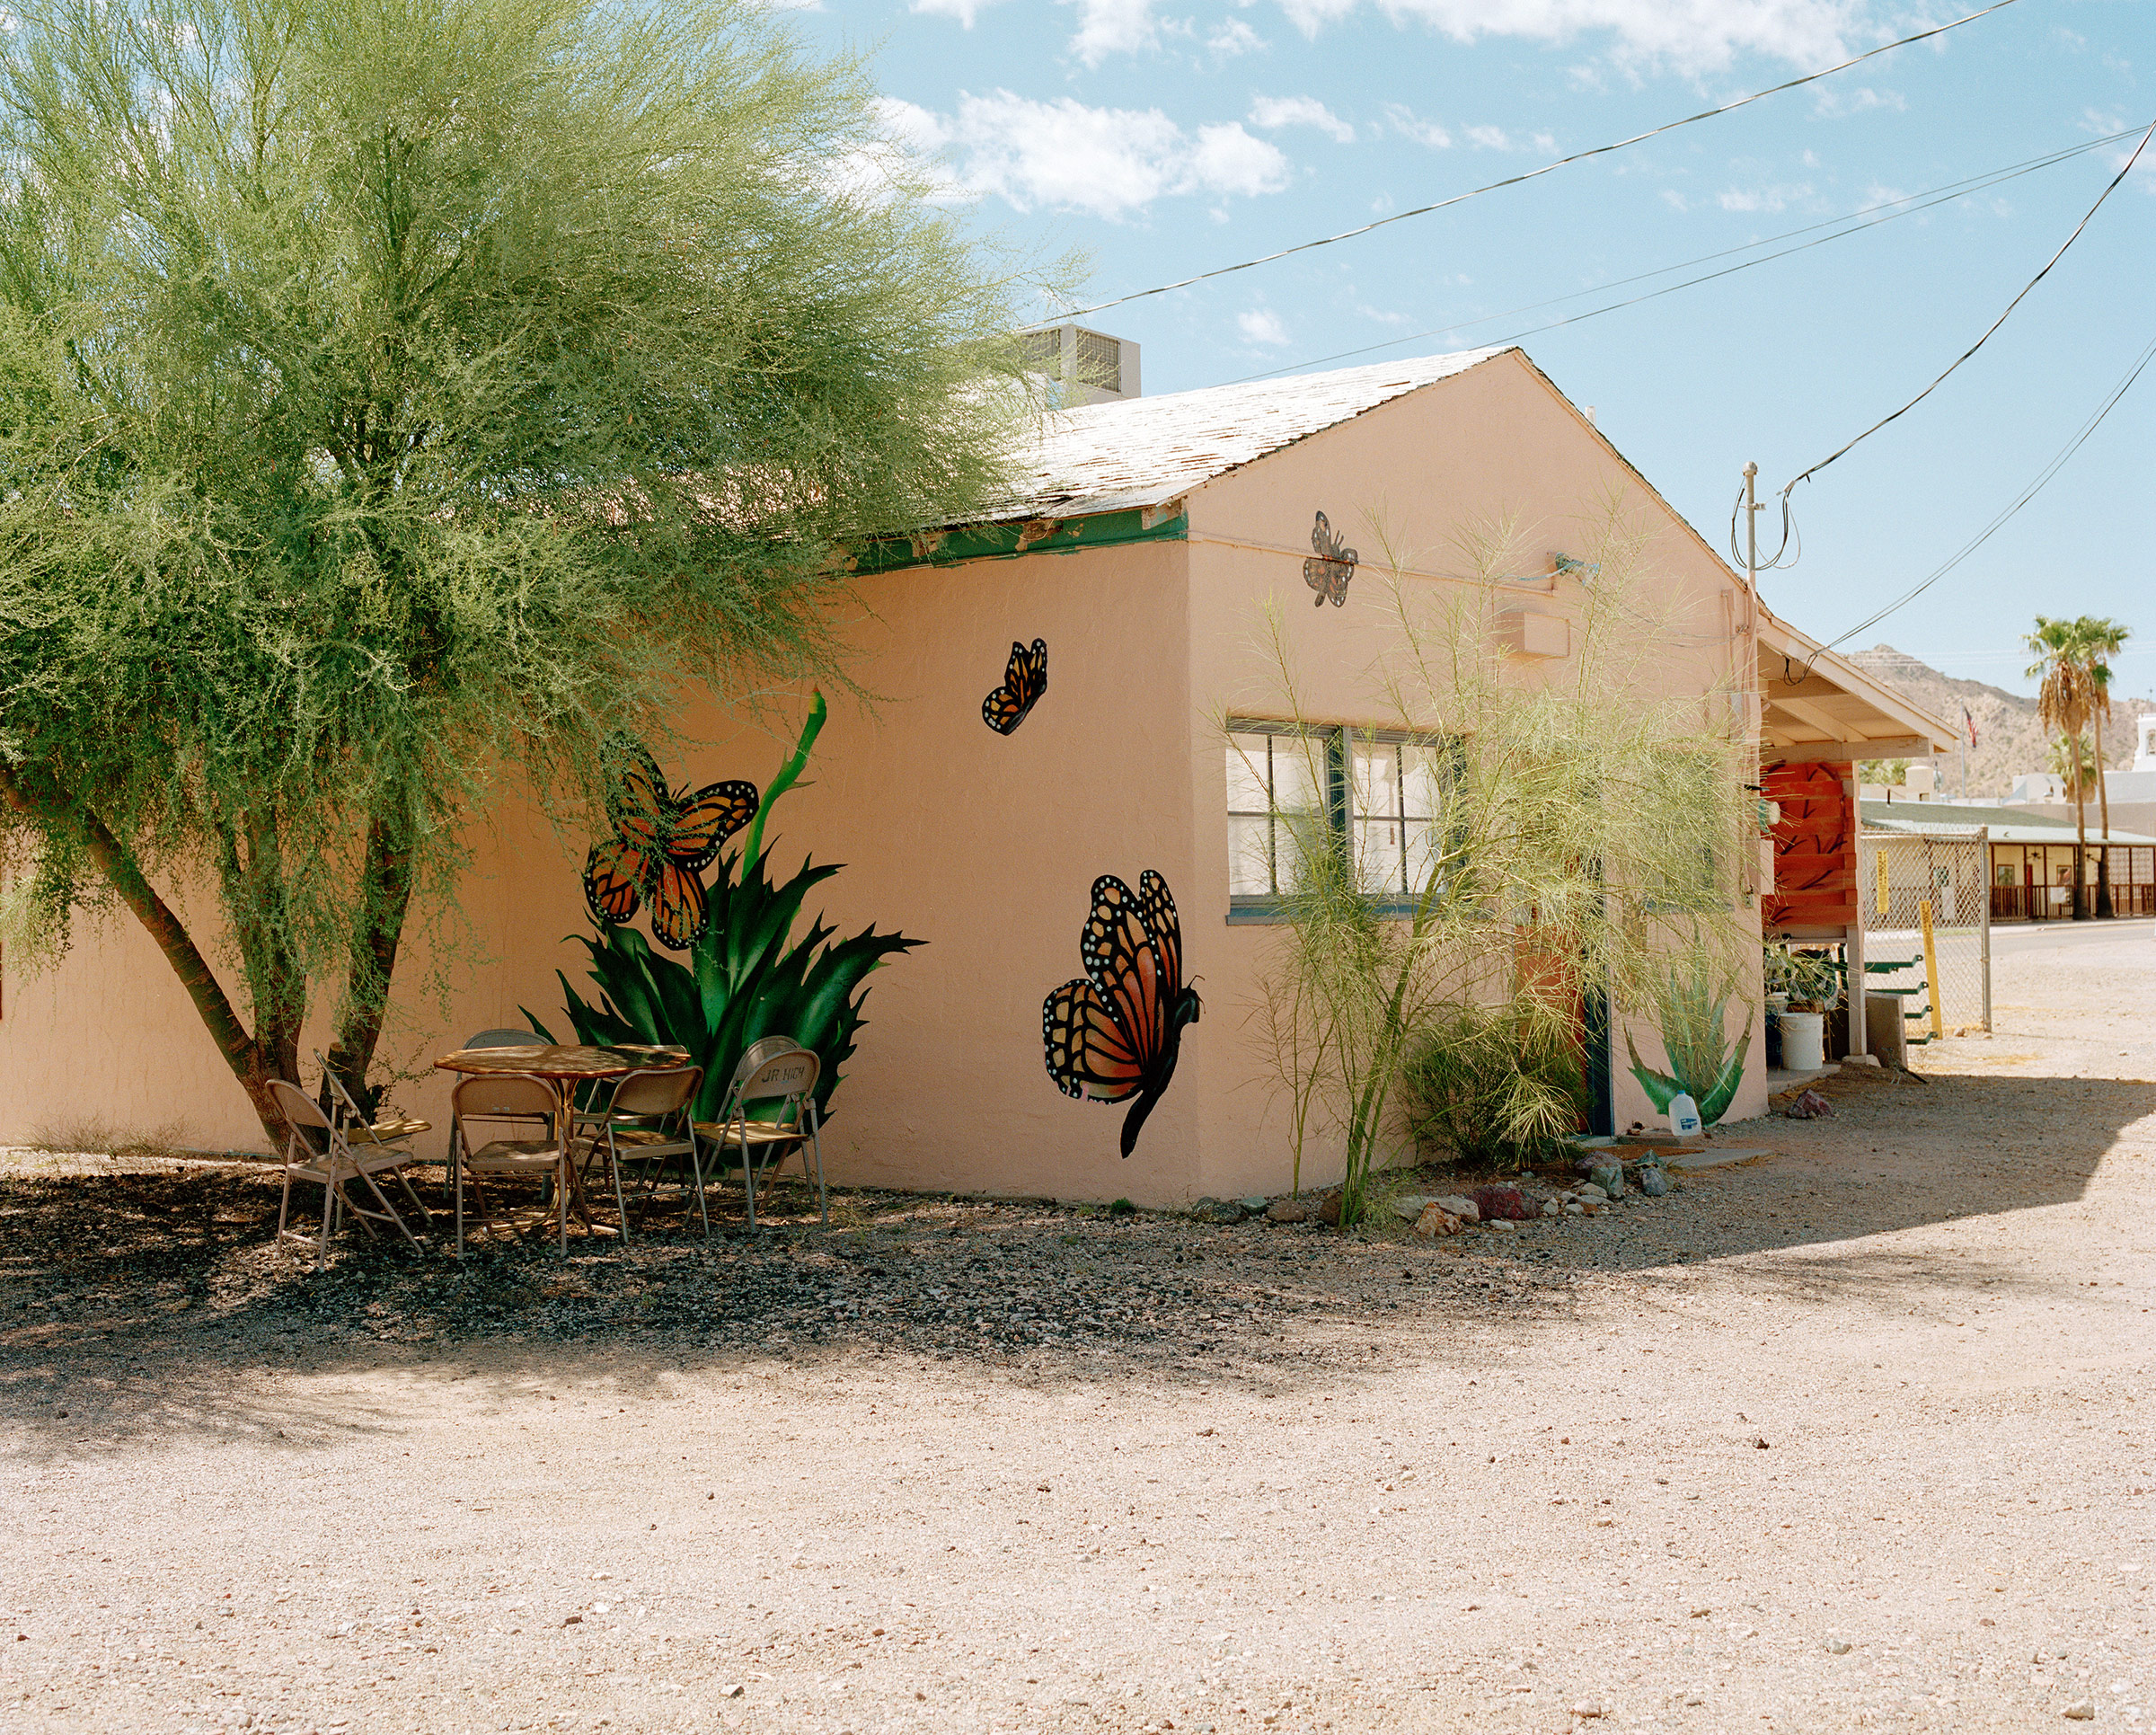 The exterior of the Ajo Humanitarian Aid Office is painted with murals of monarch butterflies, a symbol often used by immigrant rights advocates because of the insect's migratory patterns from Mexico to the United States.